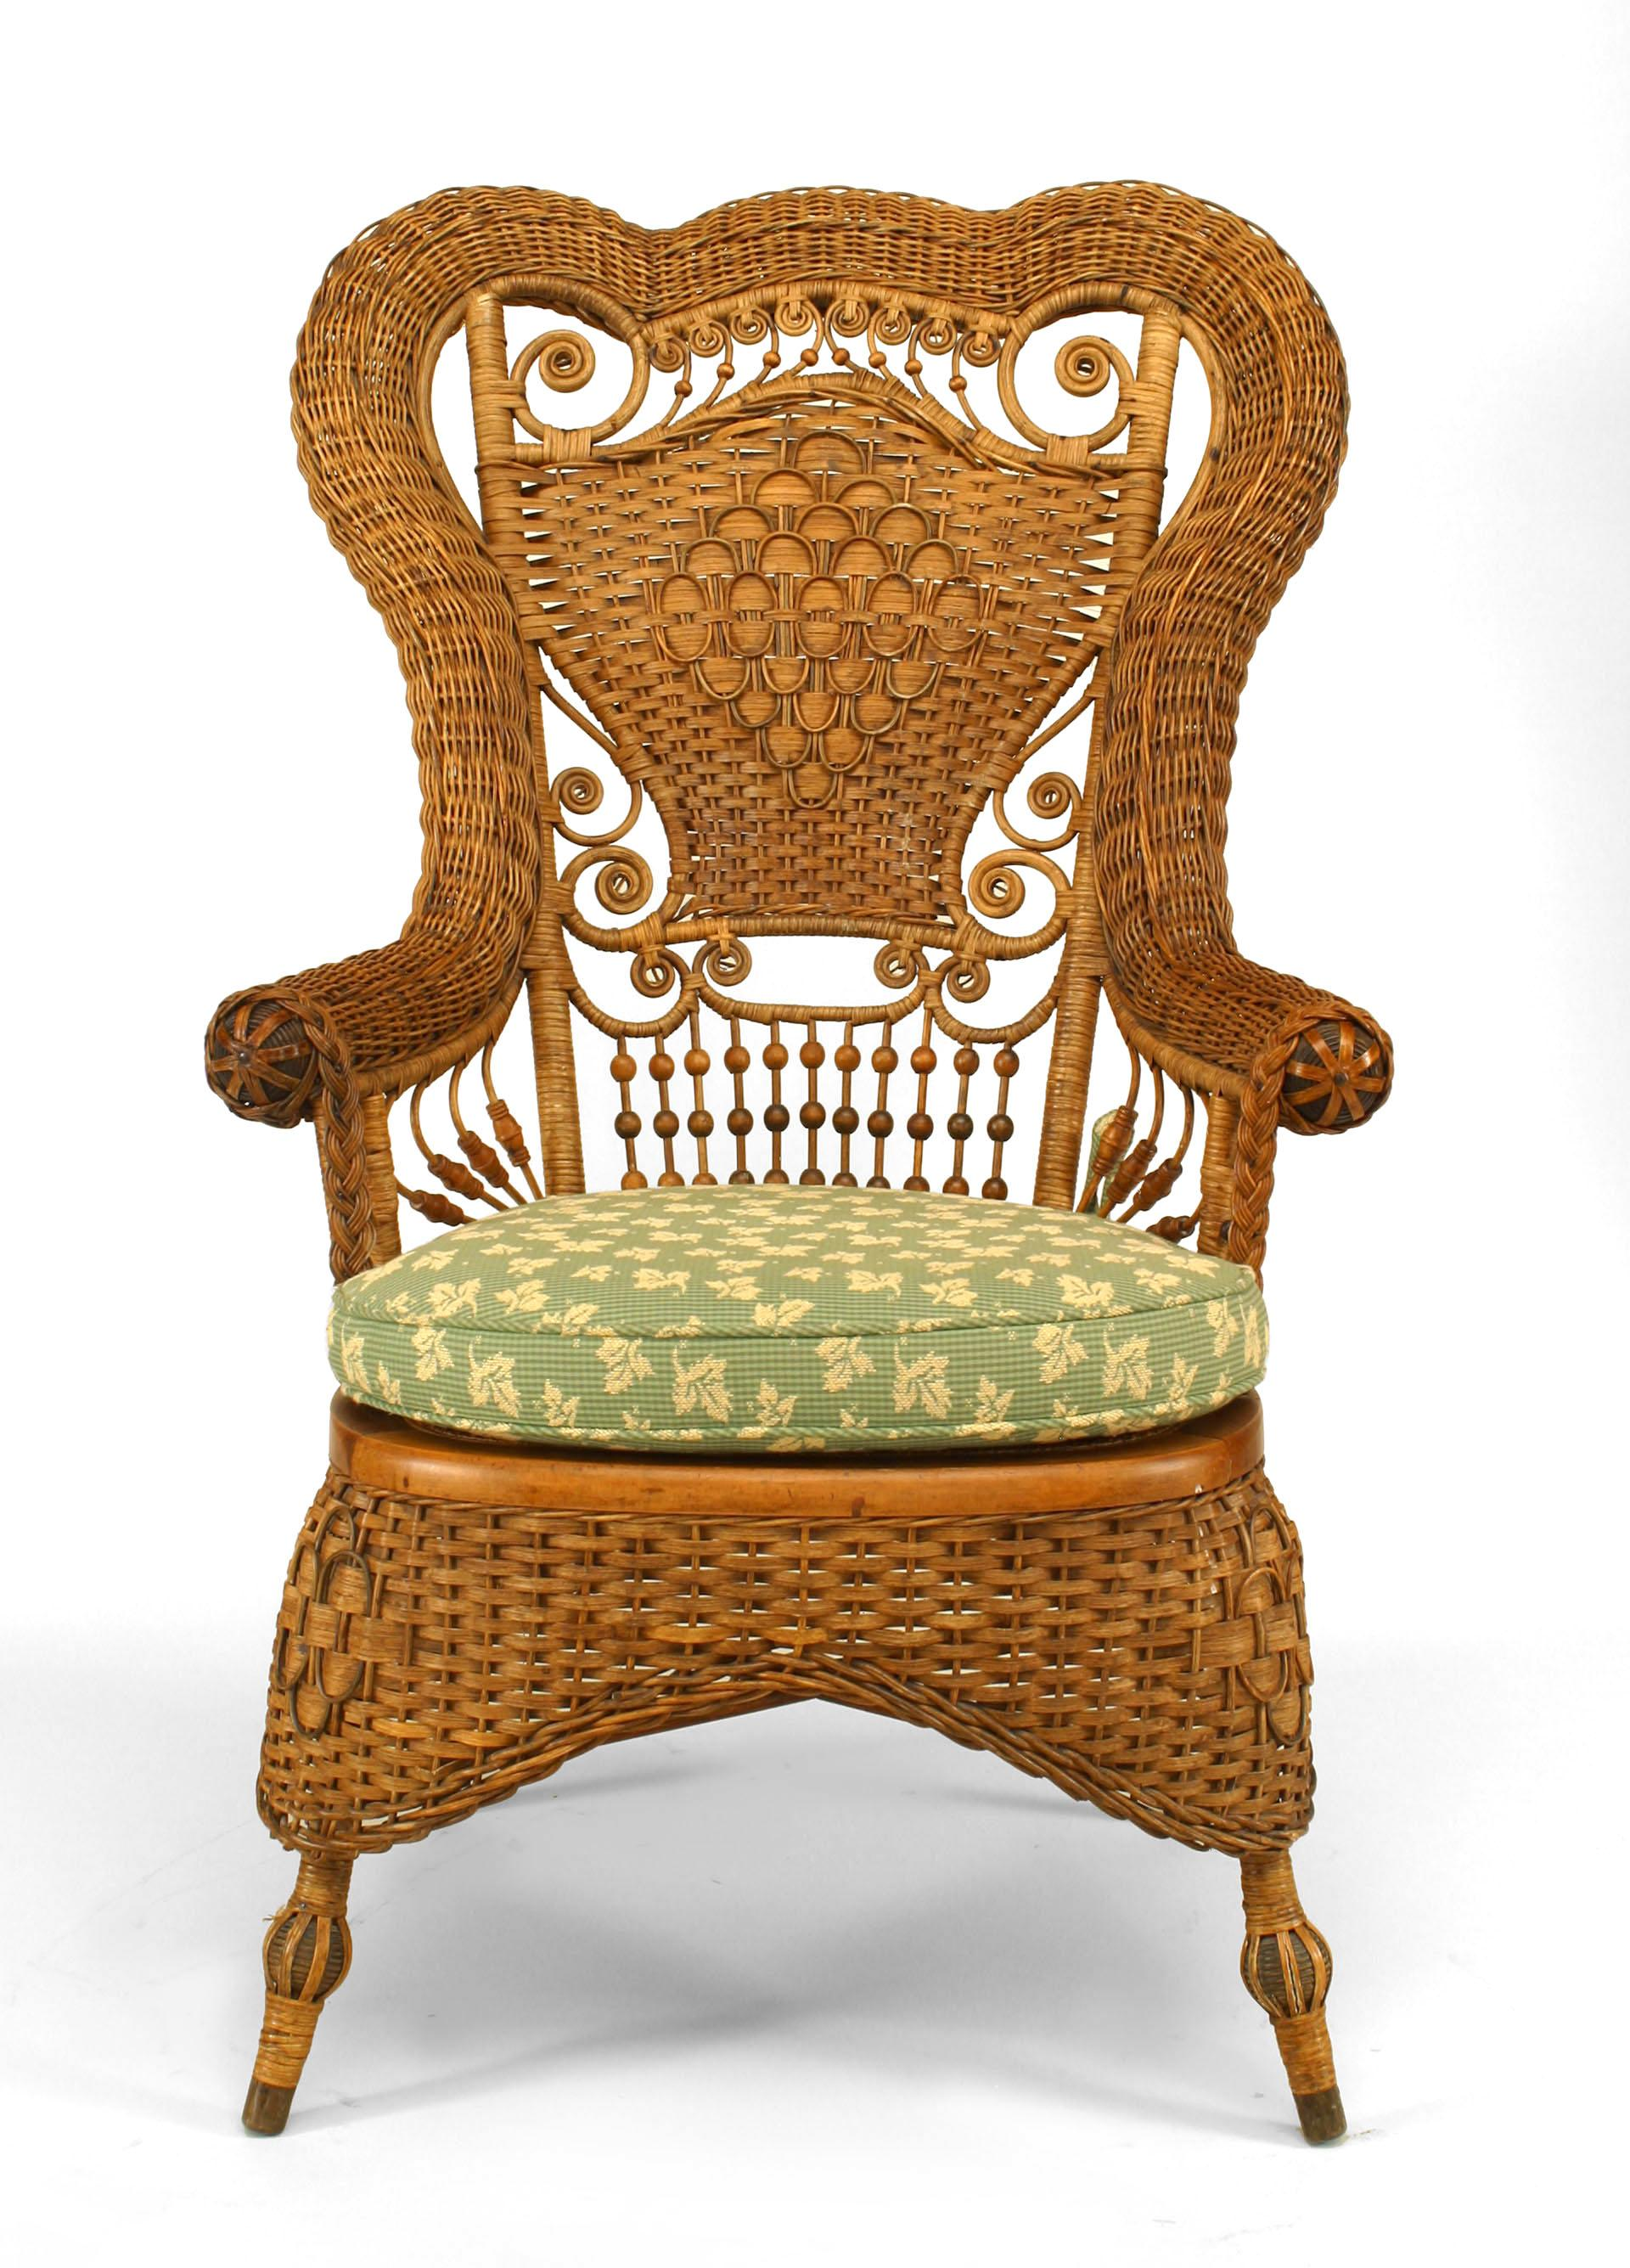 Superieur Whitney Reed High Back Wicker Armchair For Sale